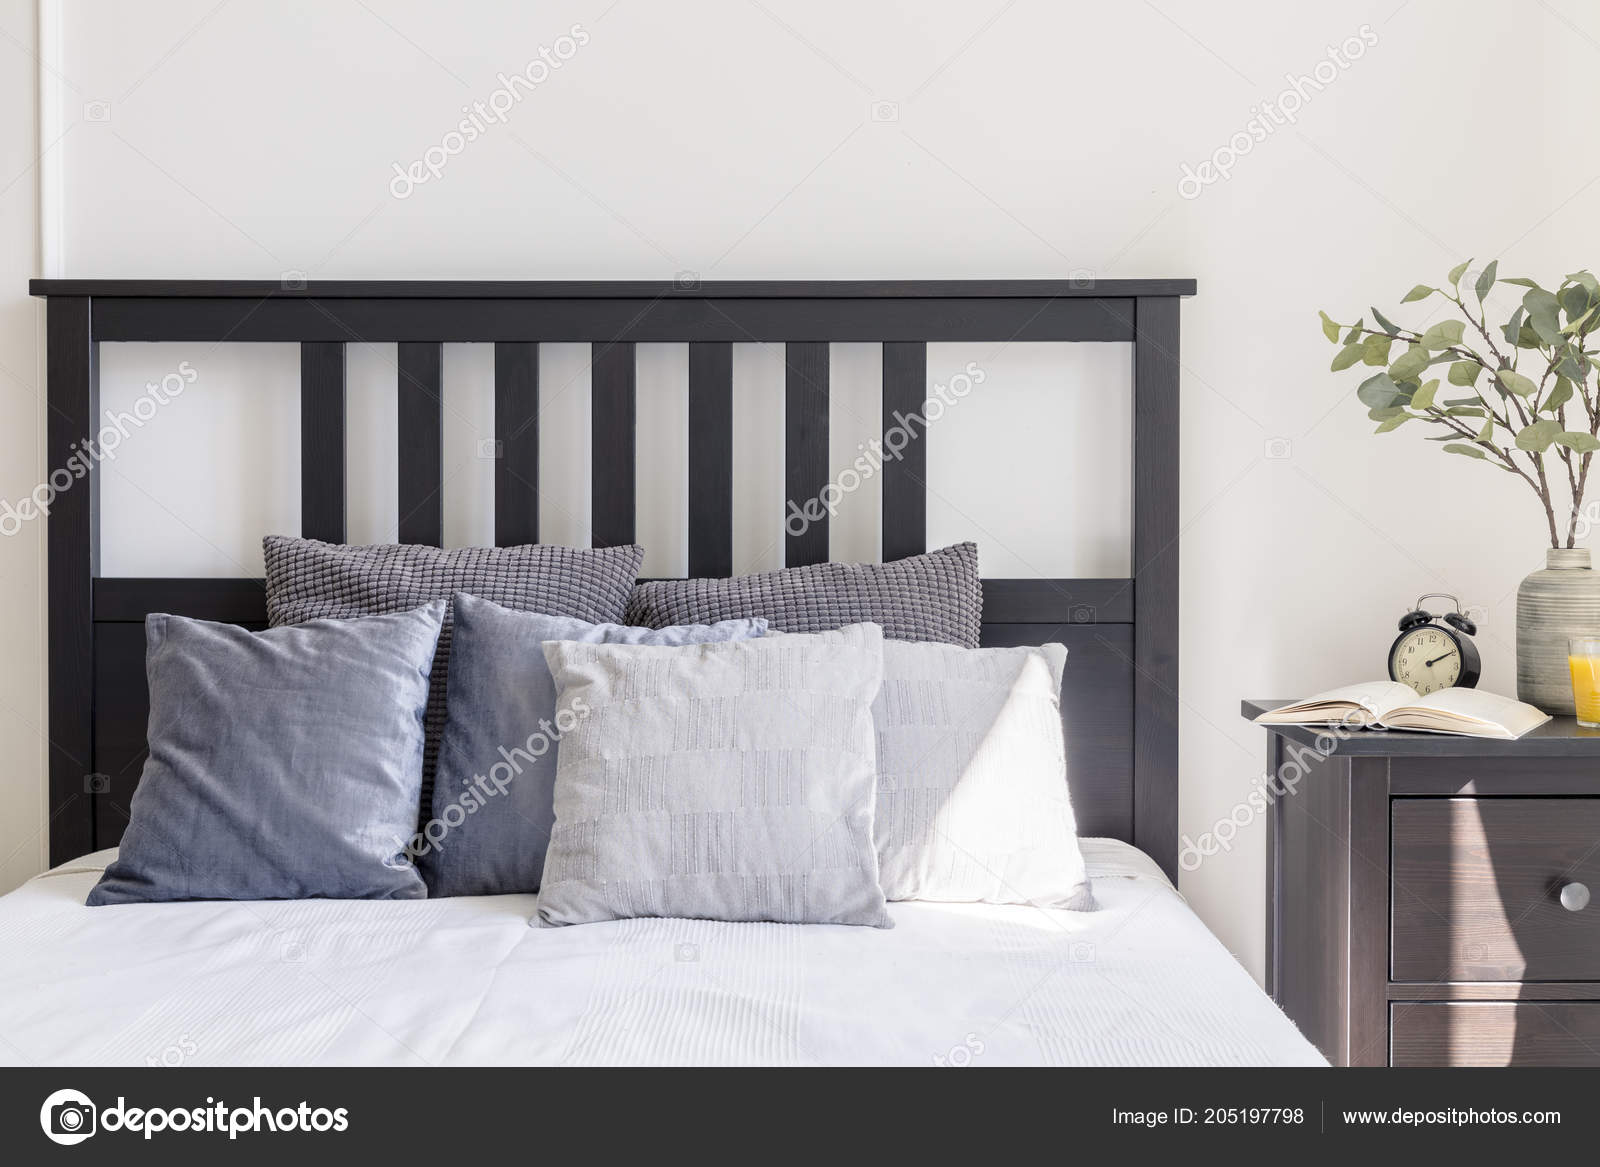 Grey White Pillows Bed Black Headboard Simple Bedroom